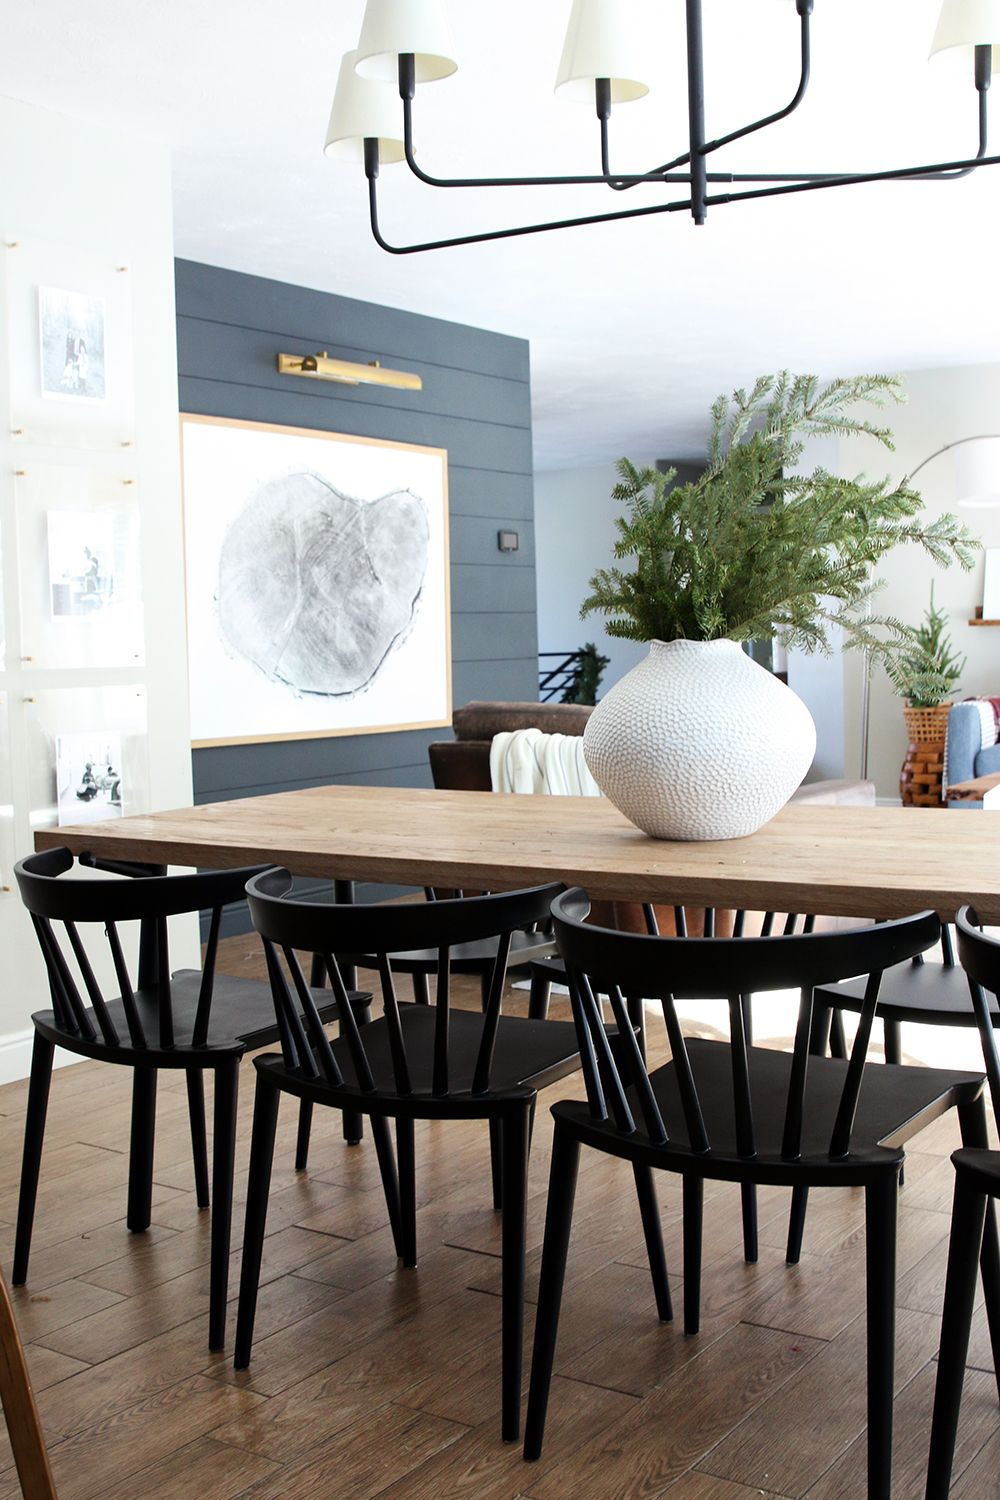 New Low Back Modern Spindle Chairs For The Dining Room Black